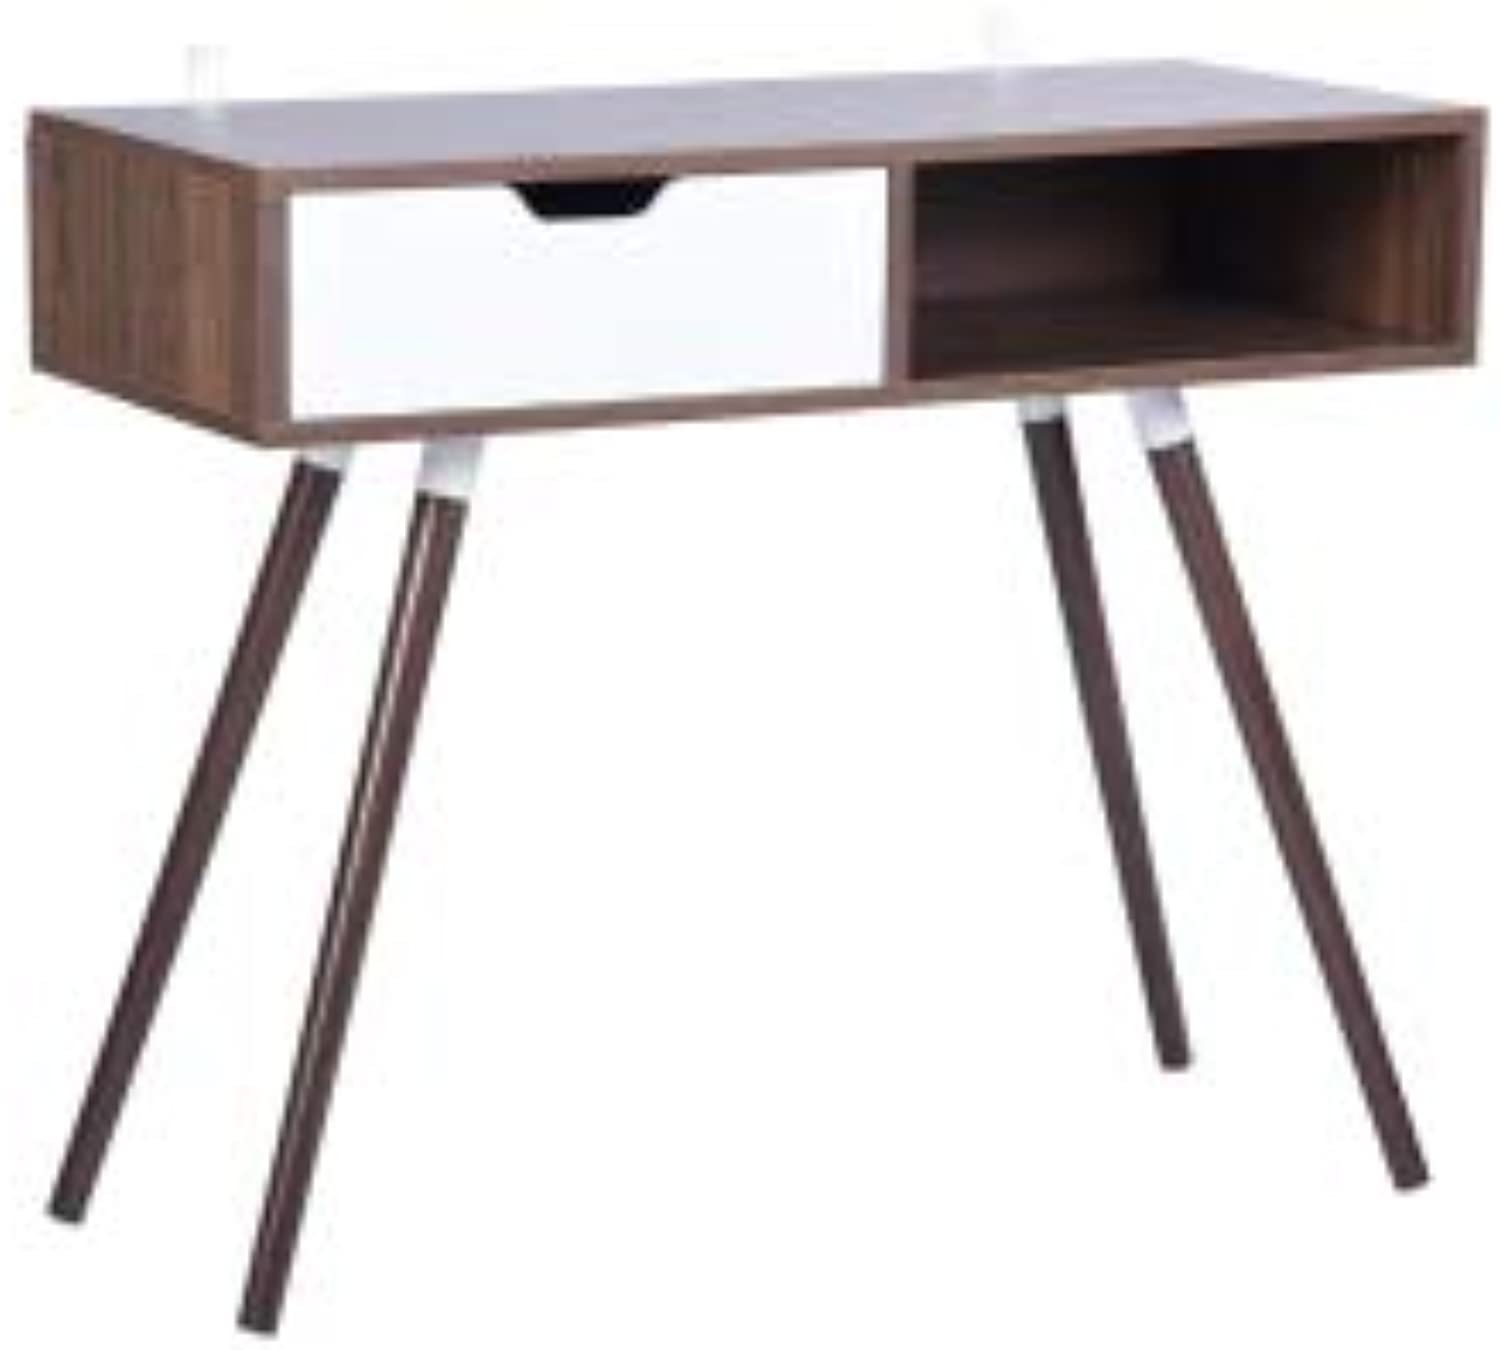 Gimify Computer Desk Scandinave with Drawer, 35.4x15.7x29.5 inches